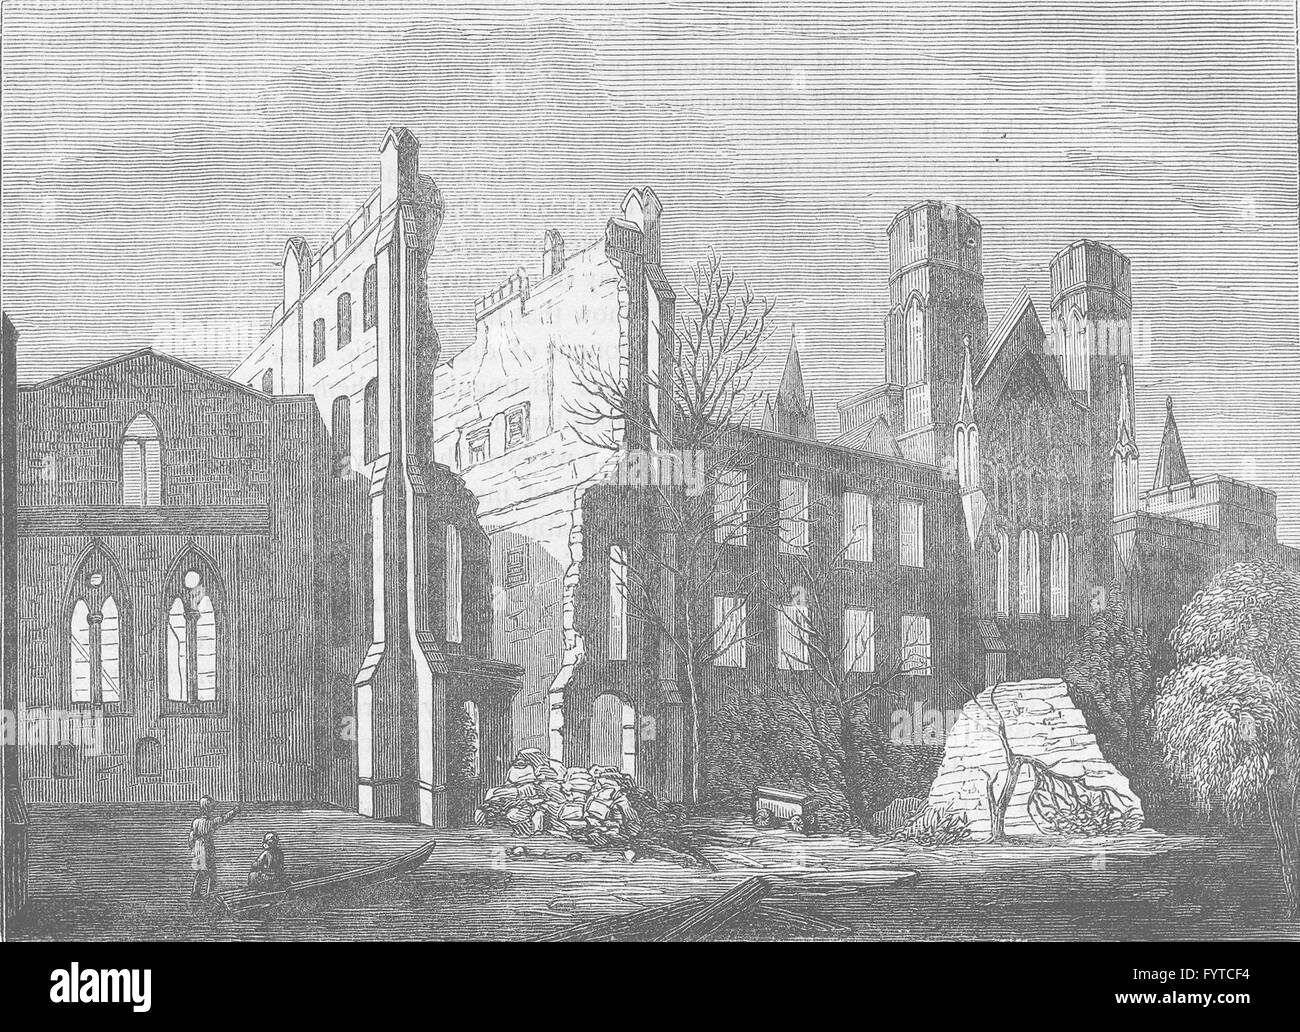 ROYAL PALACE OF WESTMINSTER: Houses of Parliament after the fire, in 1834, c1880 - Stock Image